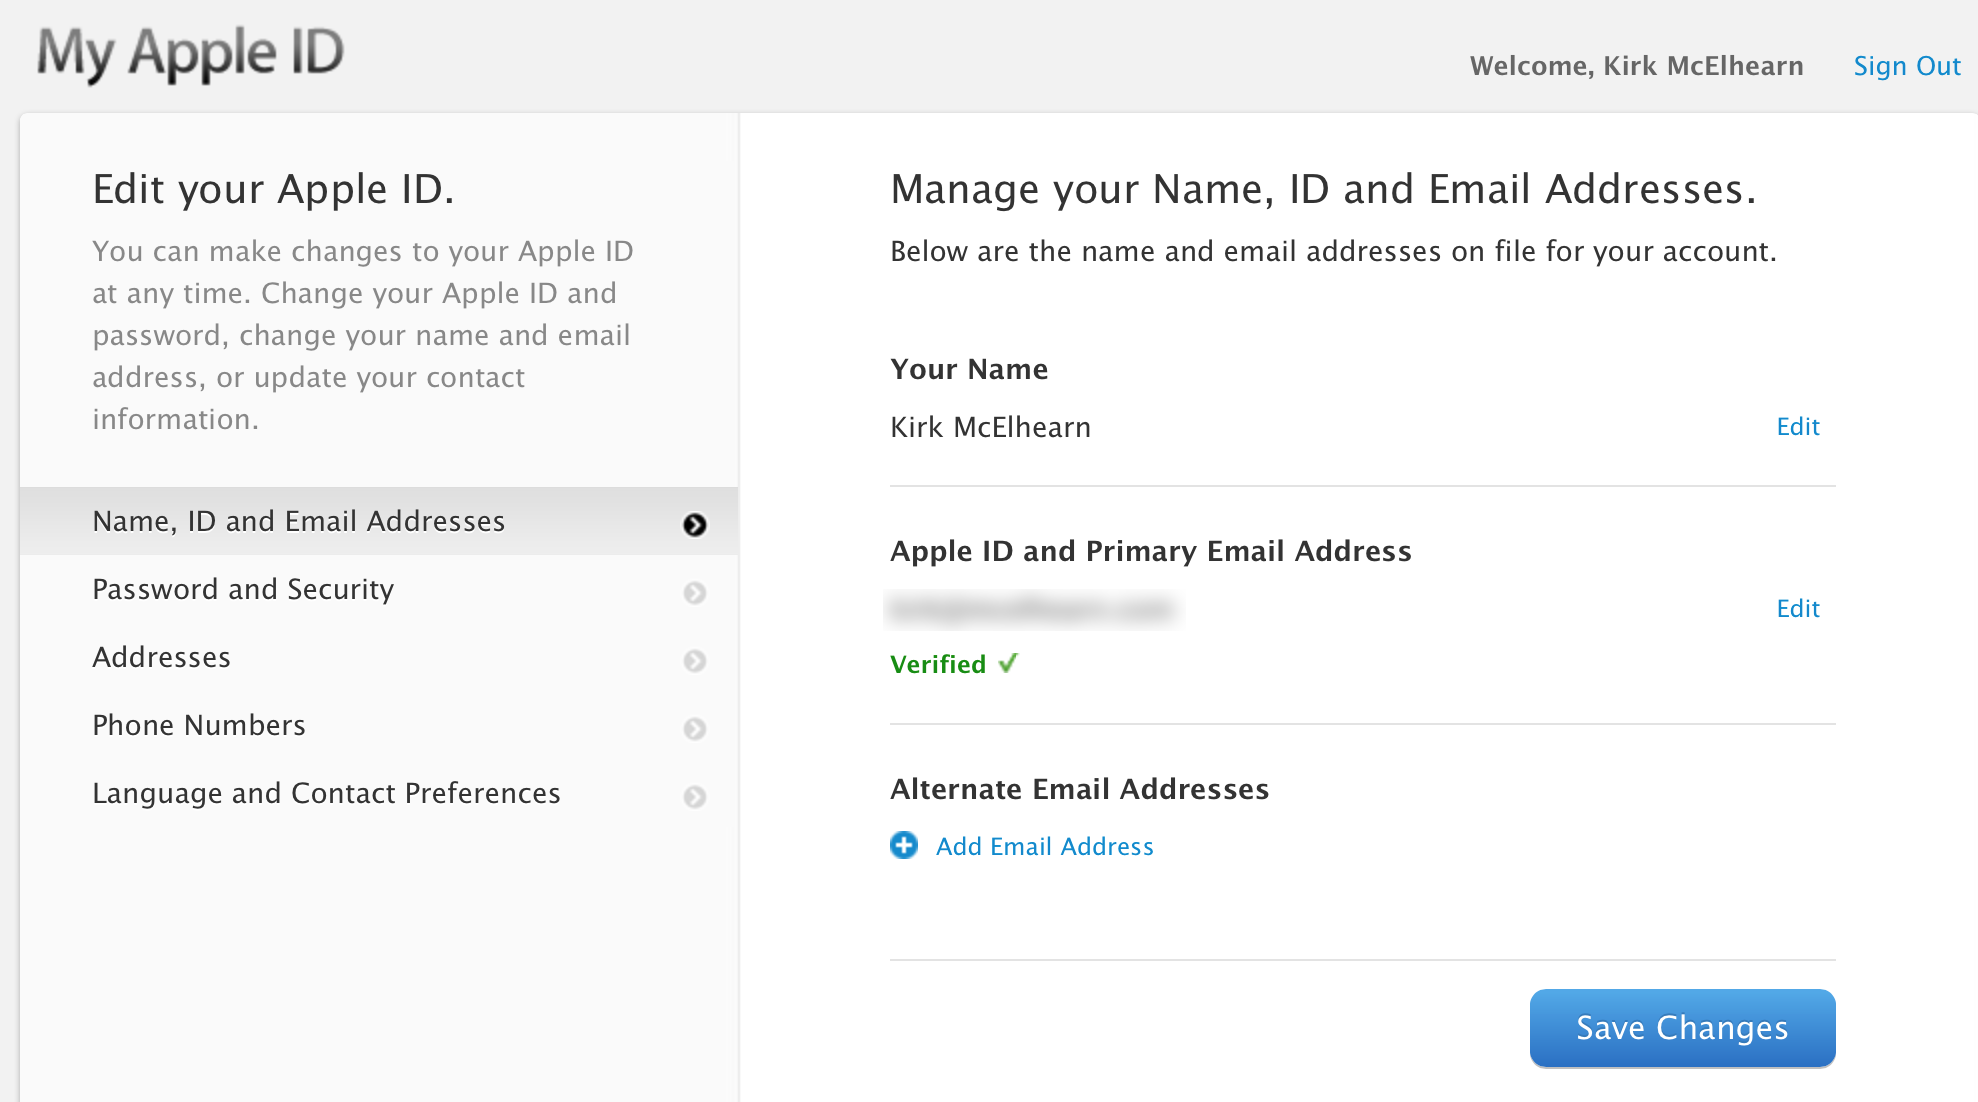 You can change the name or non apple email address associated with